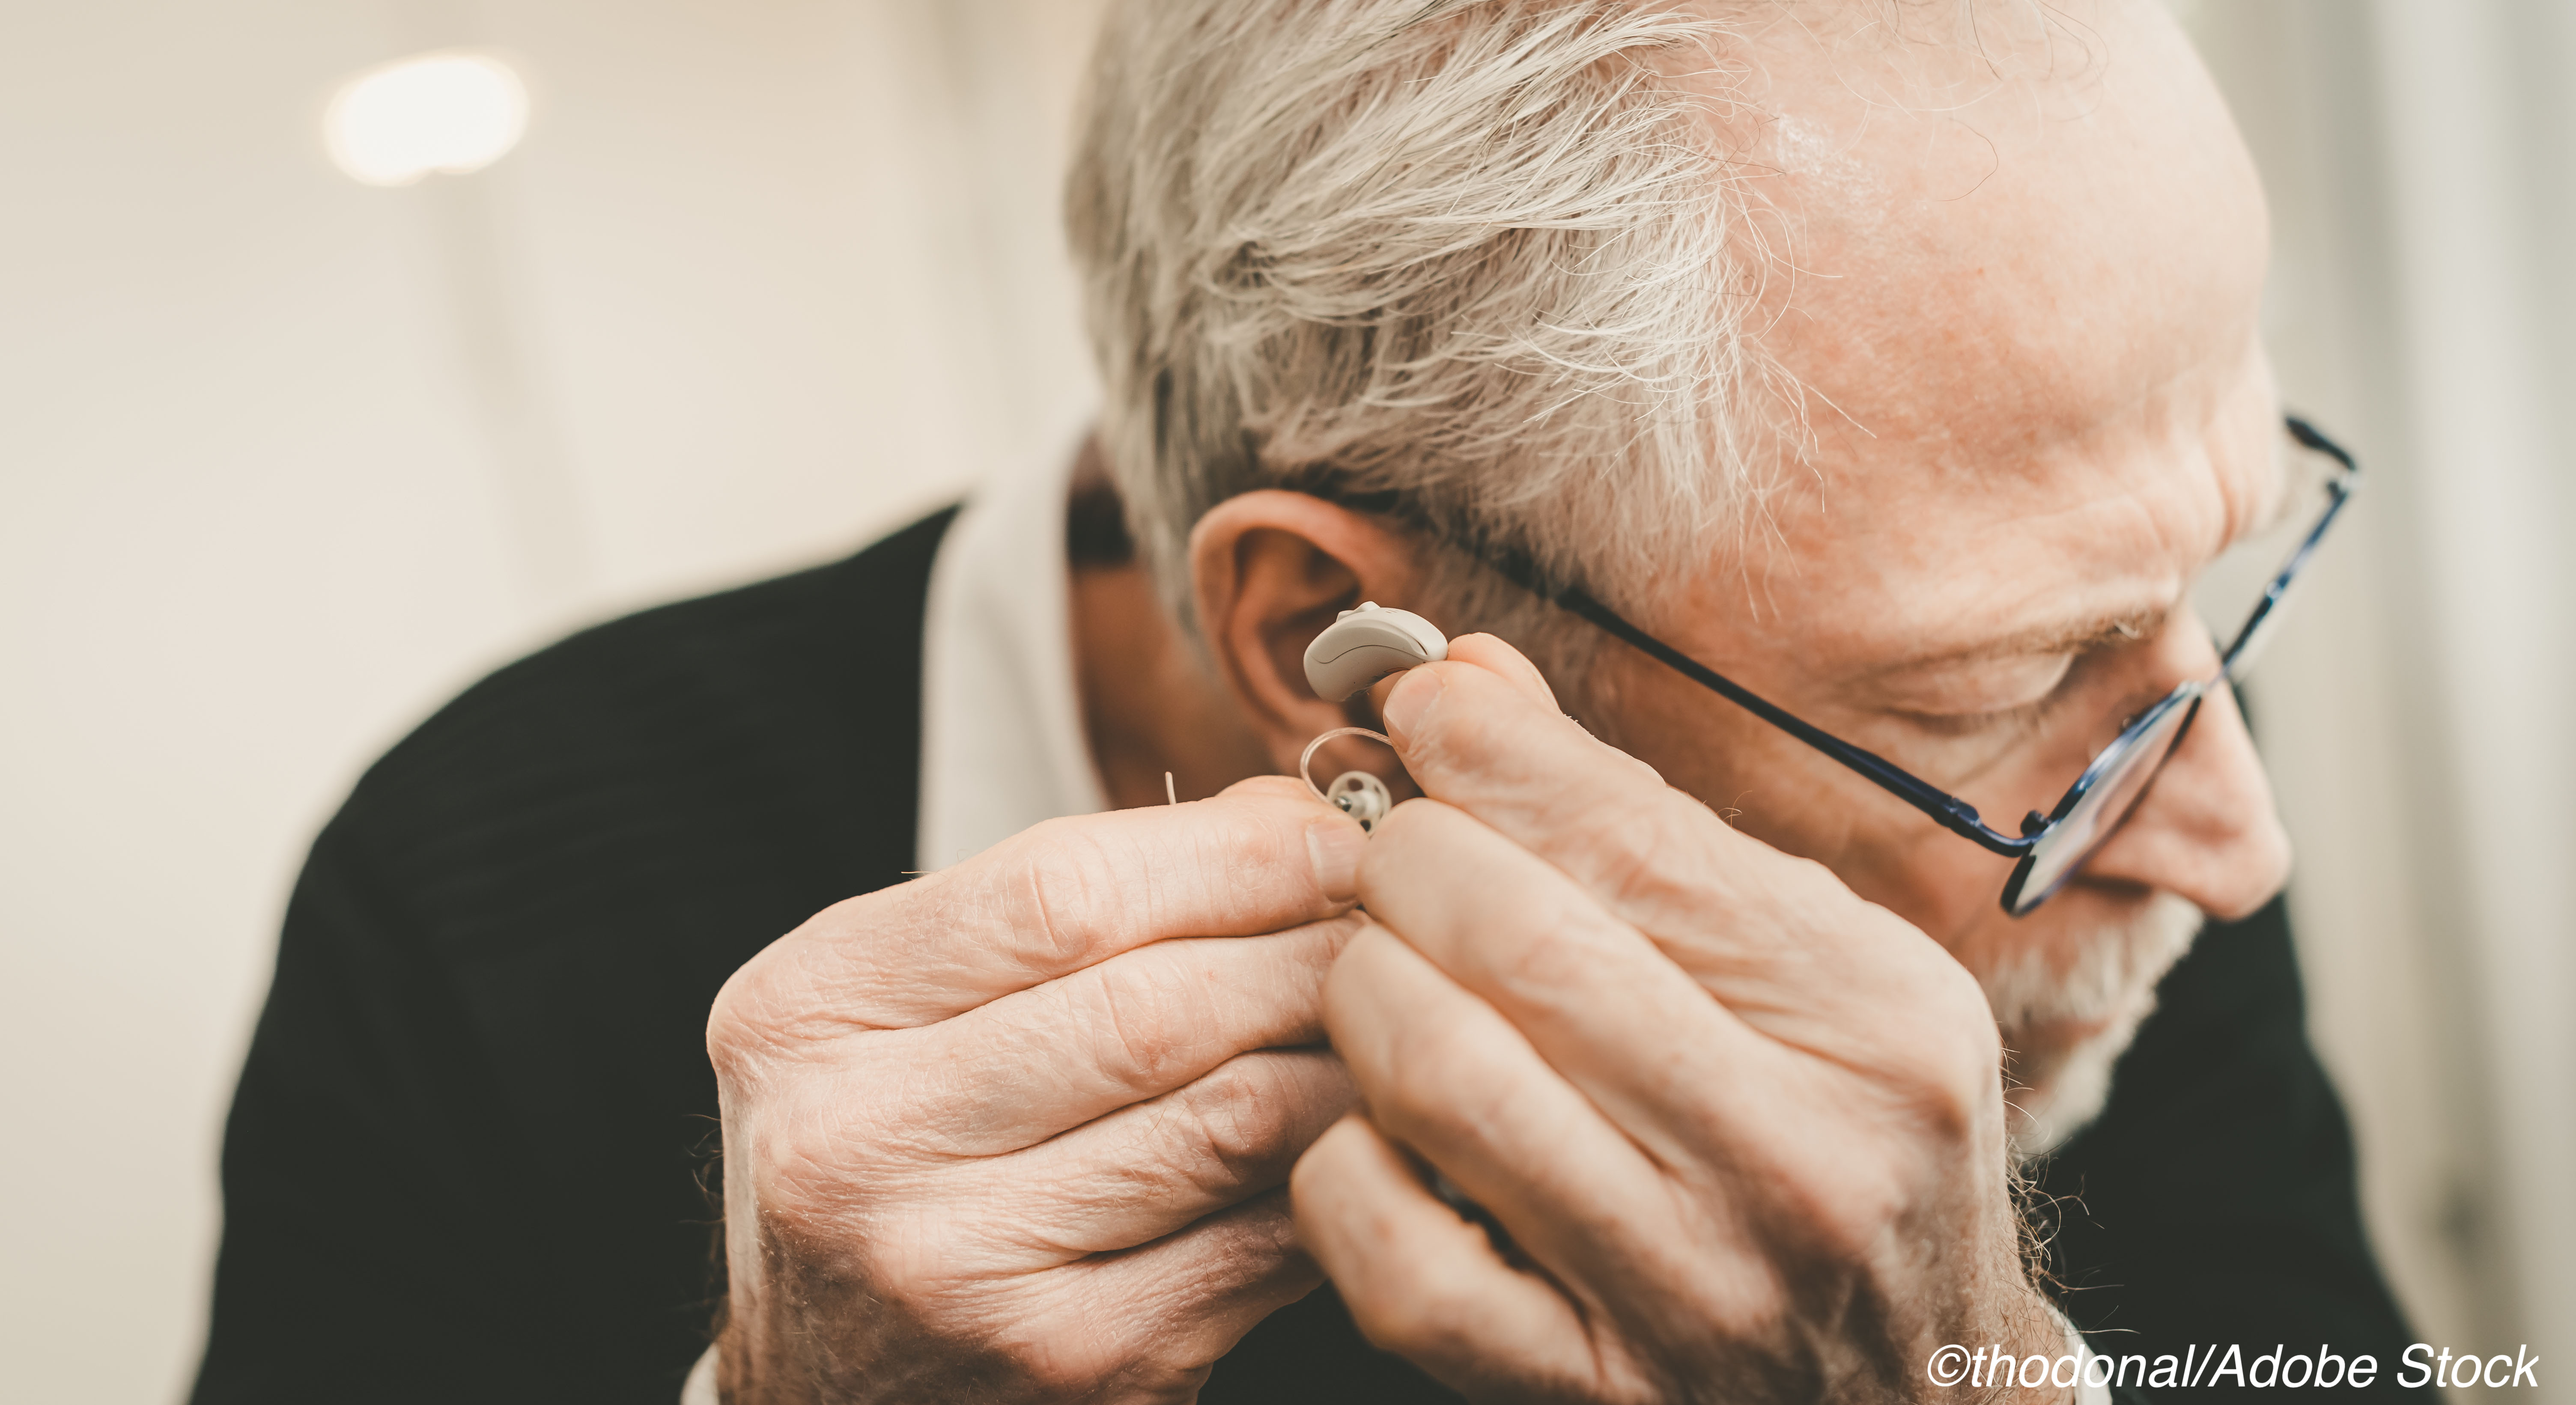 Hearing Loss Linked to Neuropathological Changes